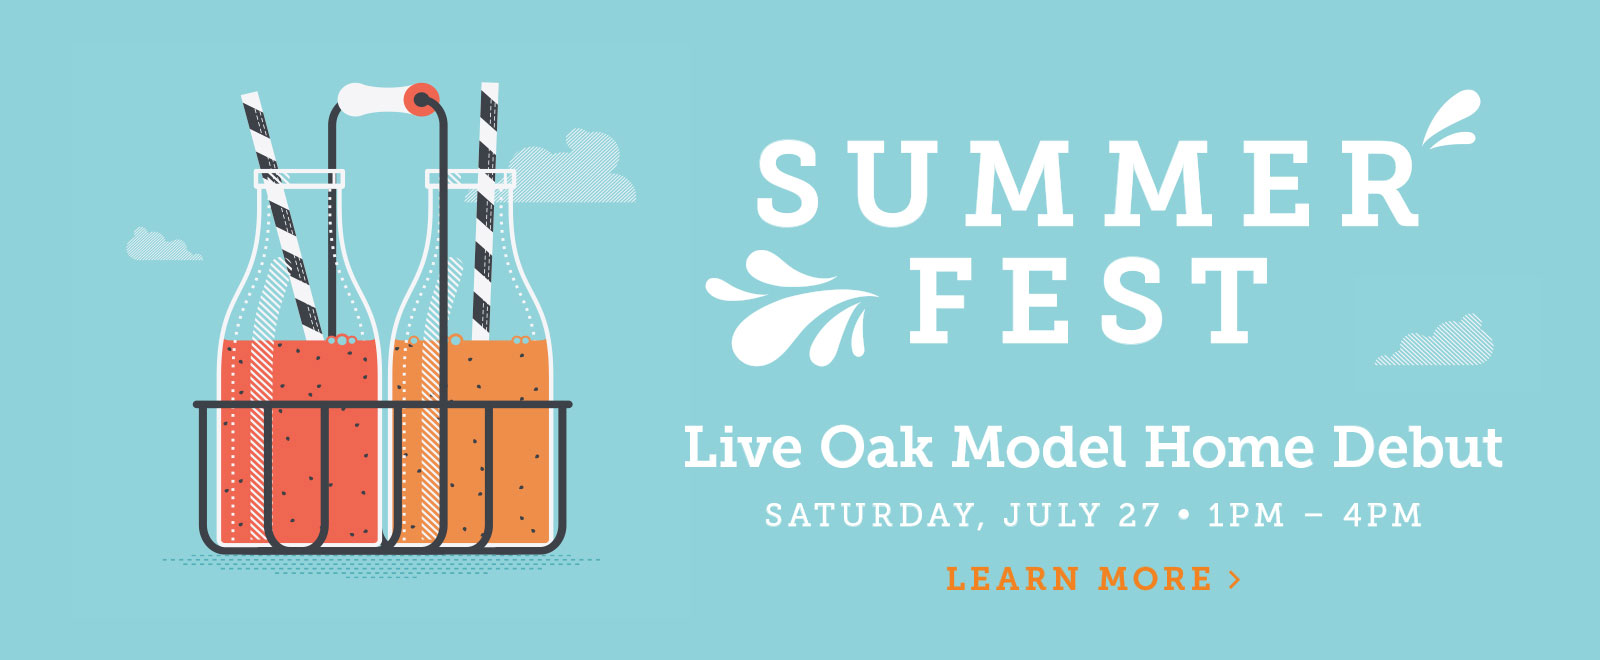 Summer Fest - Live Oak Model Home Debut, Saturday, July 27, 1PM - 4PM.